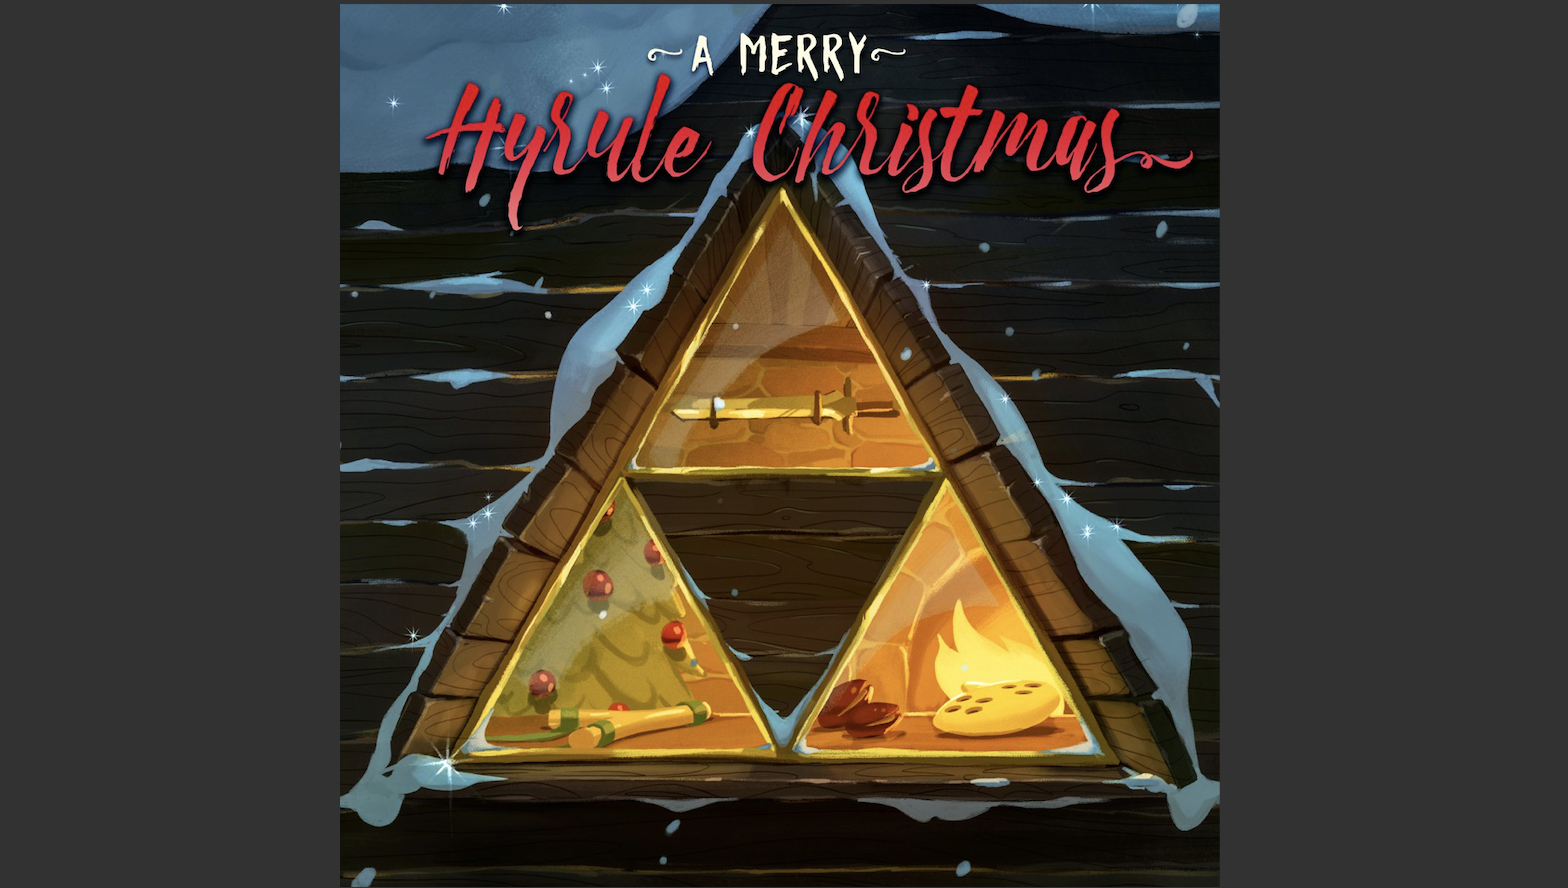 Listen To This Zelda Christmas Album To Channel Your Holiday Spirit